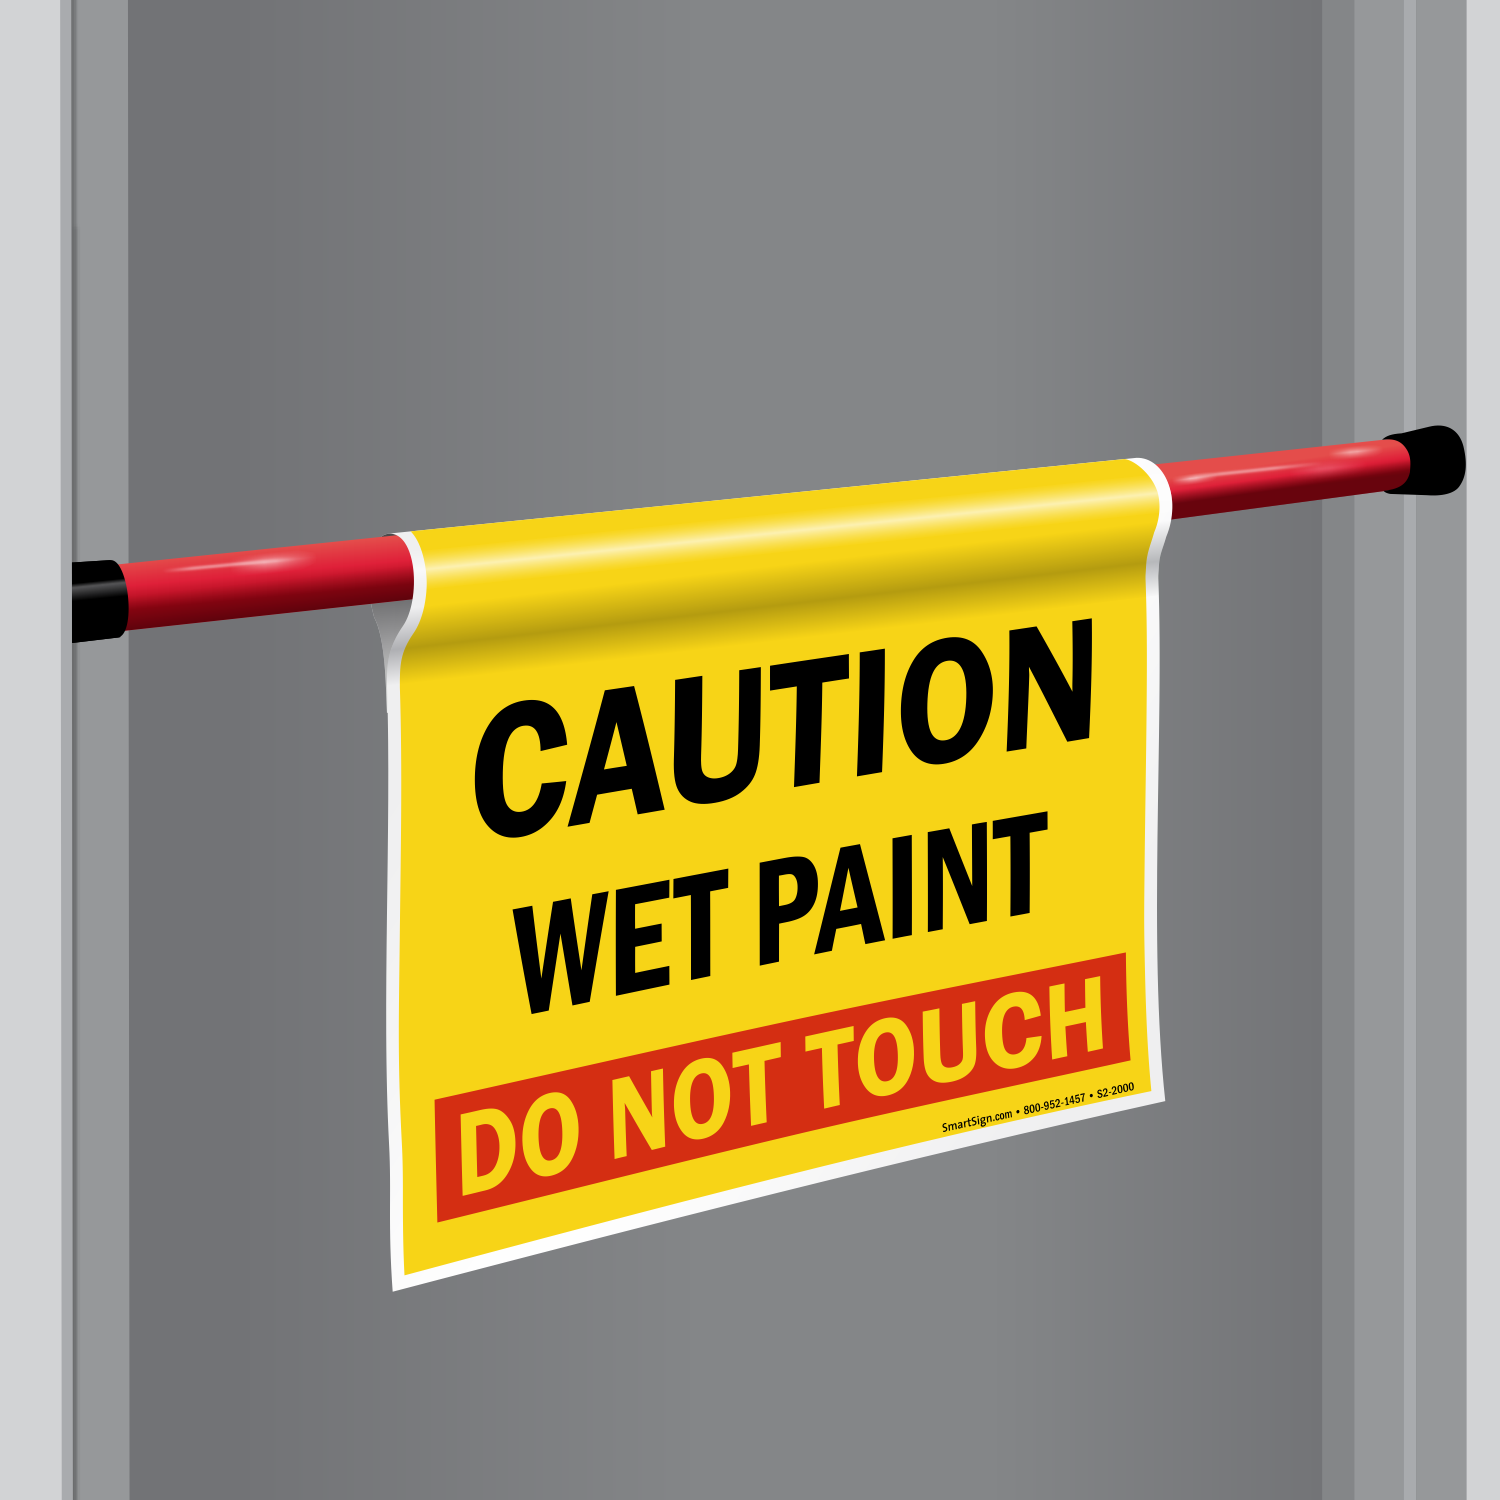 Wet Paint Do Not Touch Door Barricade Sign SKU S2-2000 - MySafetySign.com & Wet Paint Do Not Touch Door Barricade Sign SKU: S2-2000 ...